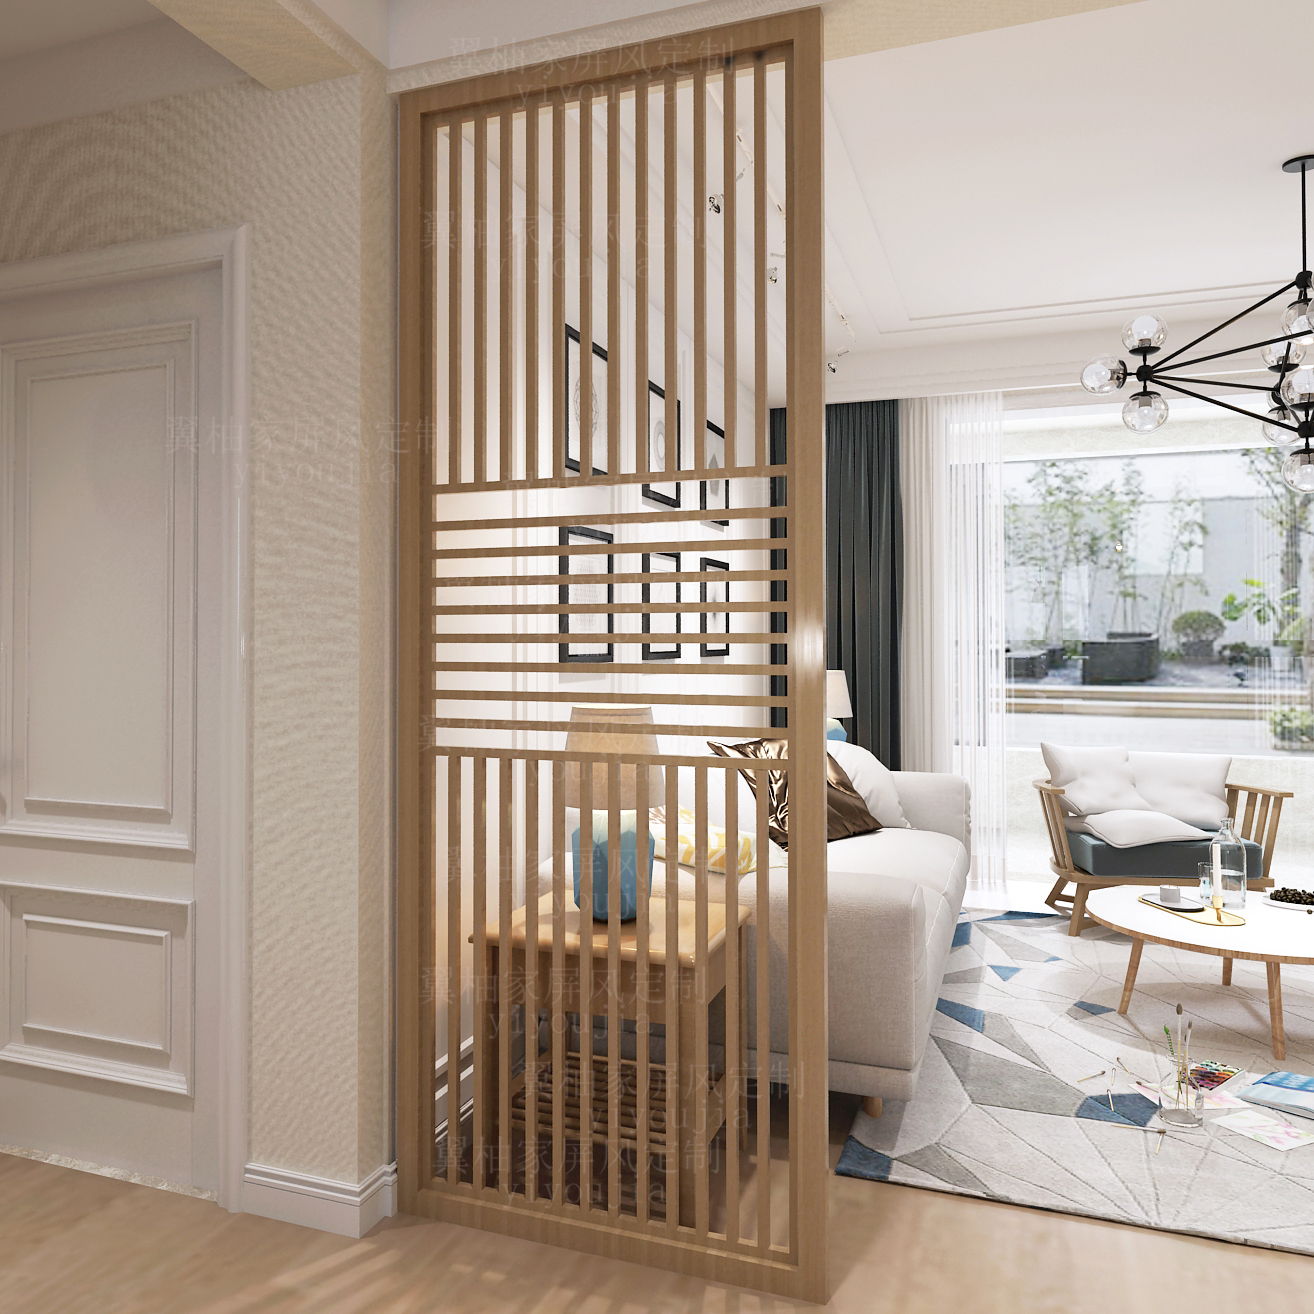 Using Wood Lattice